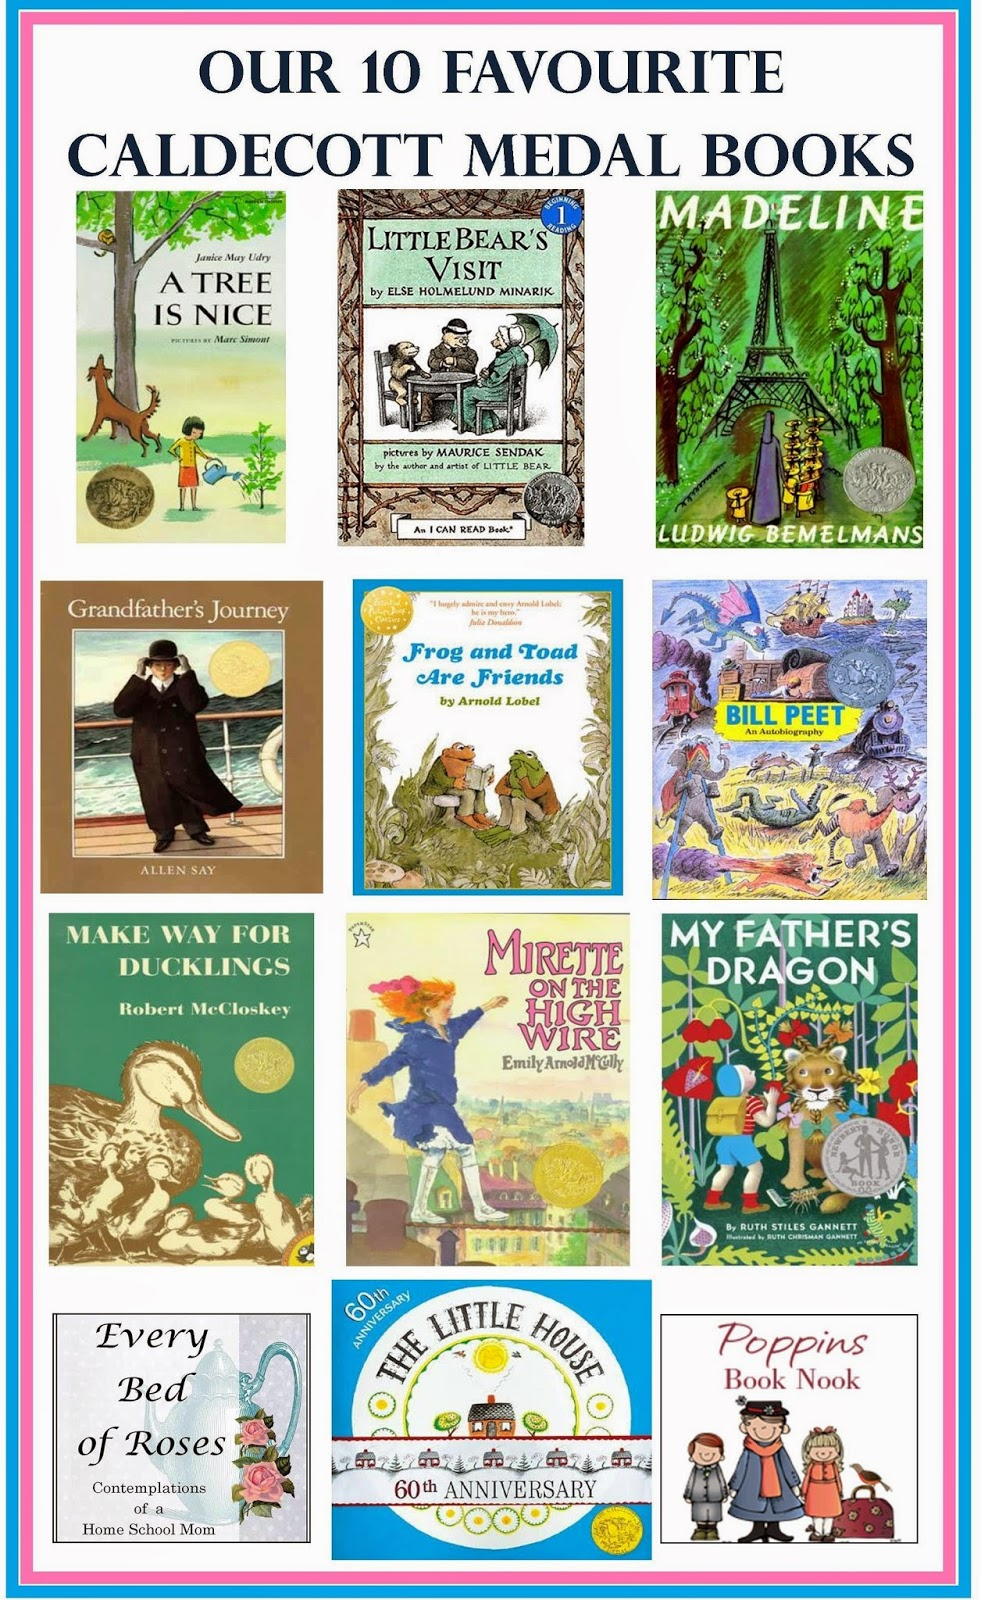 Our Favourite Tree Guide Trees Of The Carolinian Forest: Every Bed Of Roses: Our 10 Favourite Caldecott Medal Books